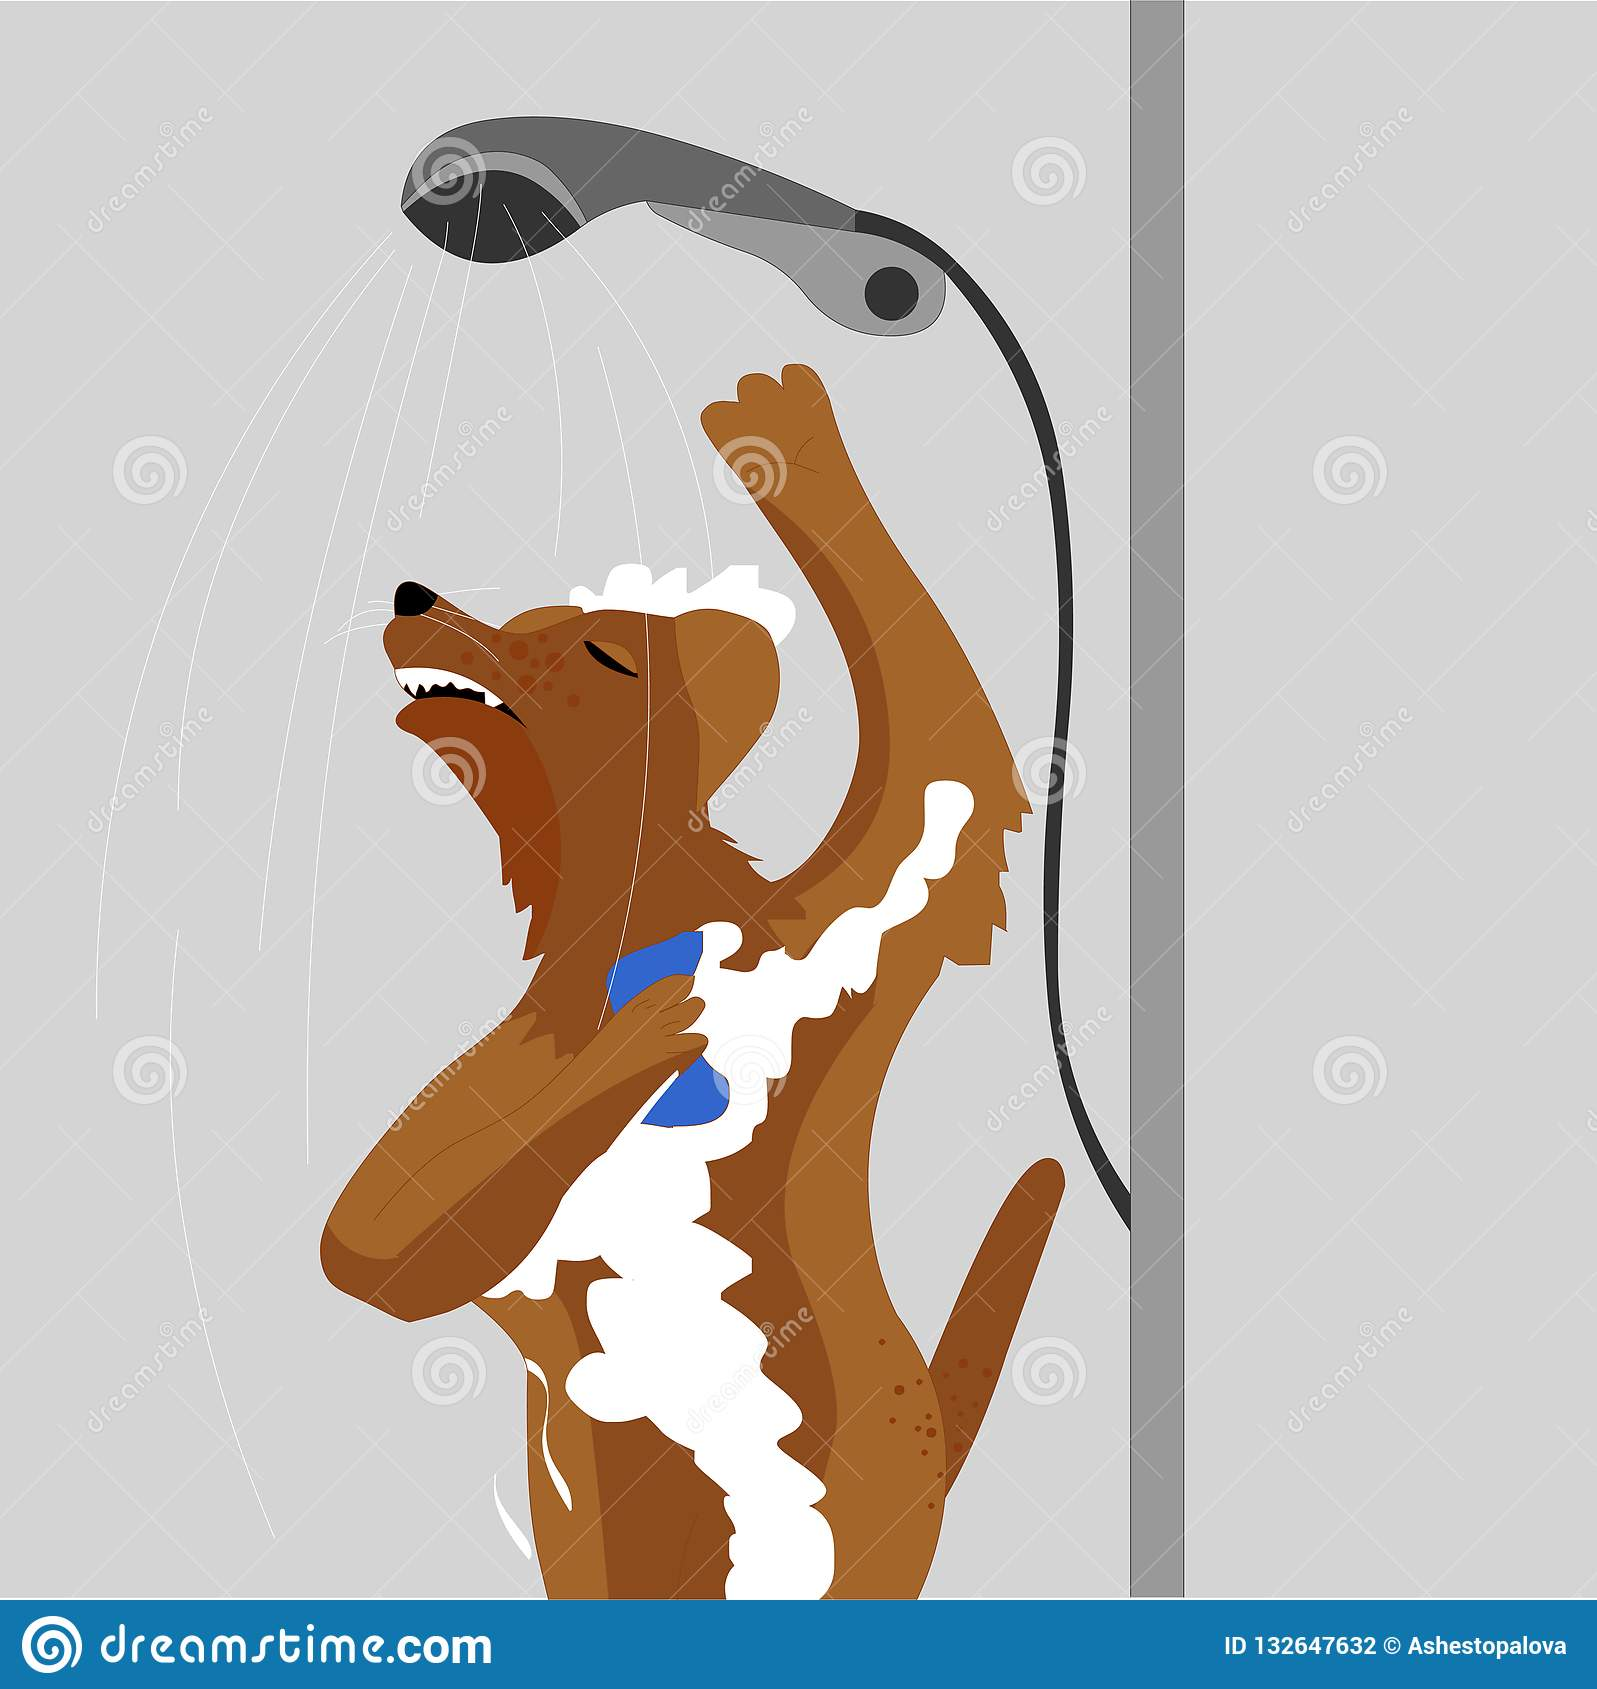 The dog washes in the shower